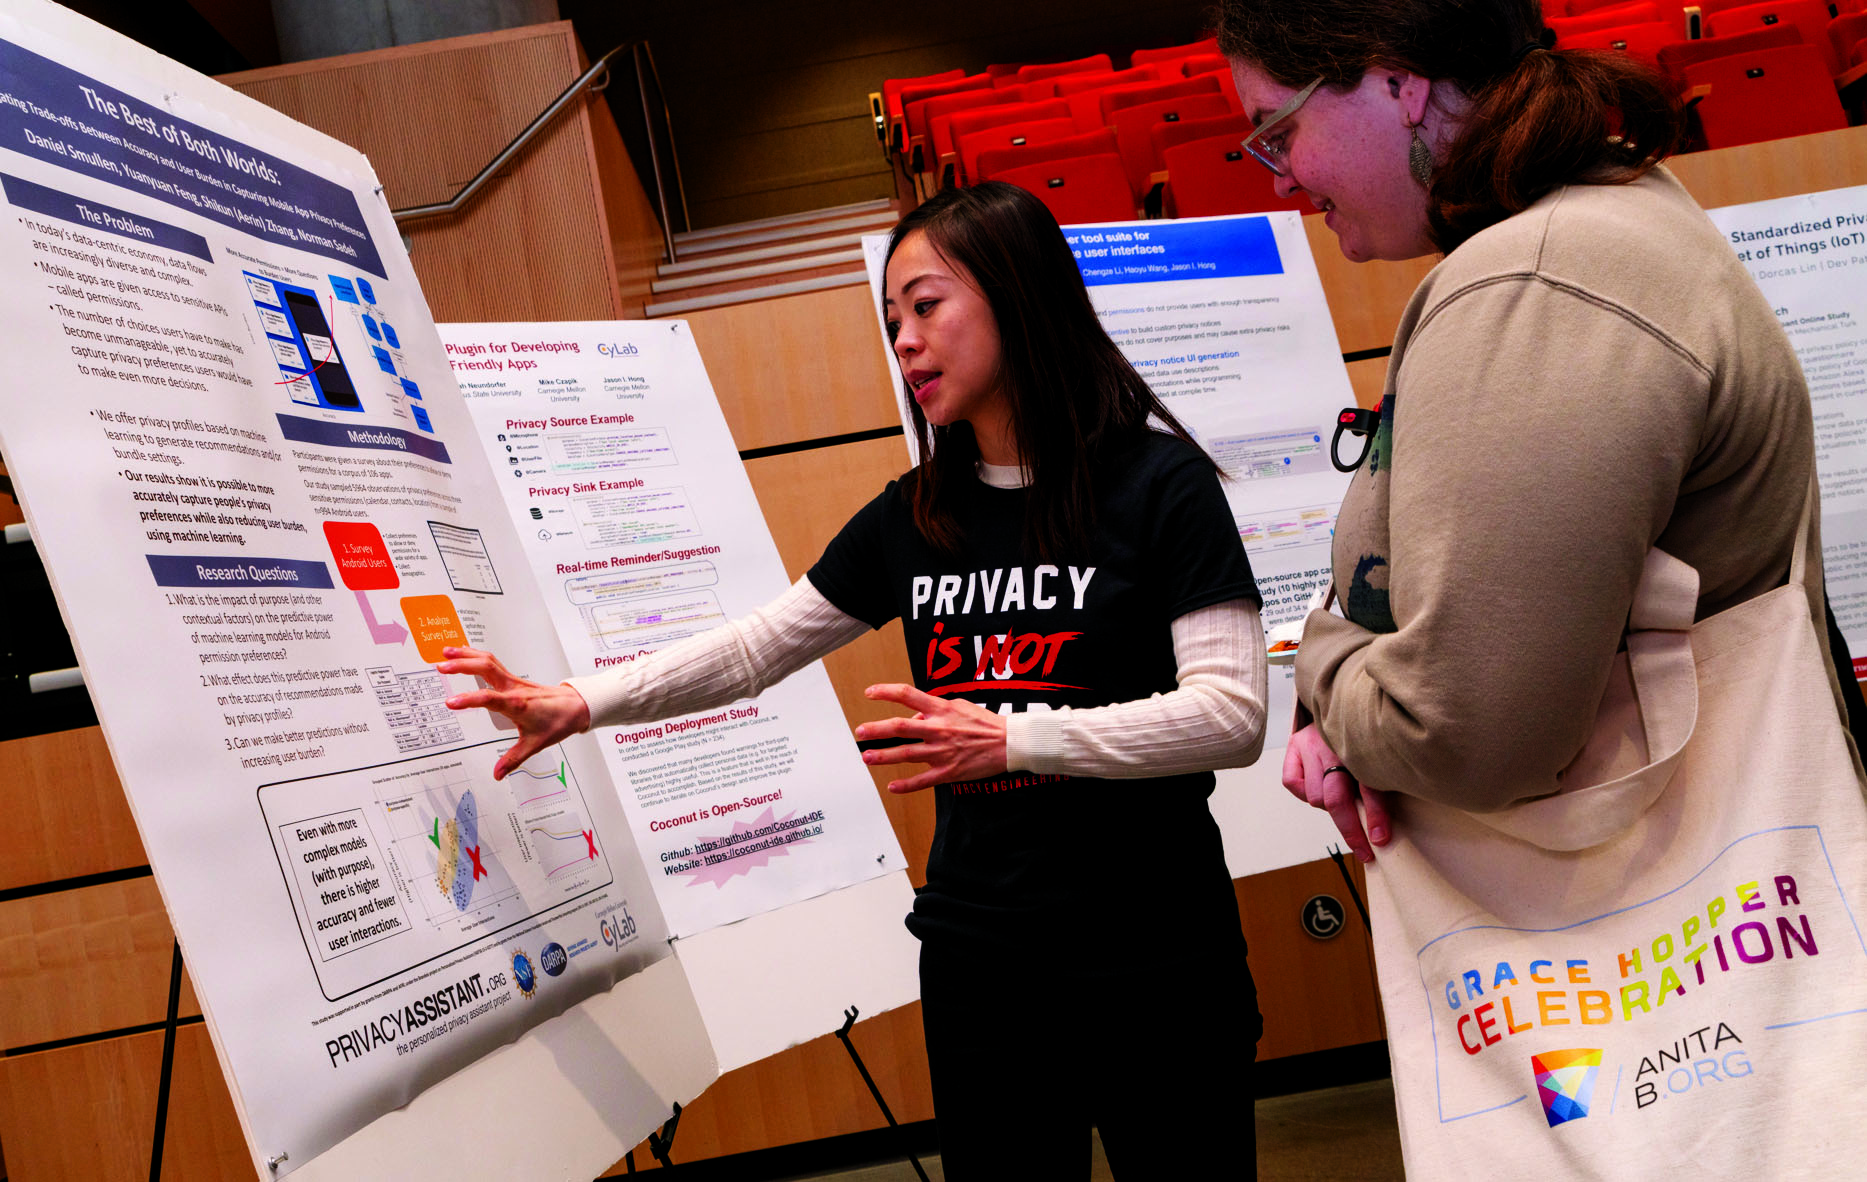 A researcher discusses her work on the privacyassistant.org project with an event attendee. (credit: Courtesy of Carnegie Mellon University)